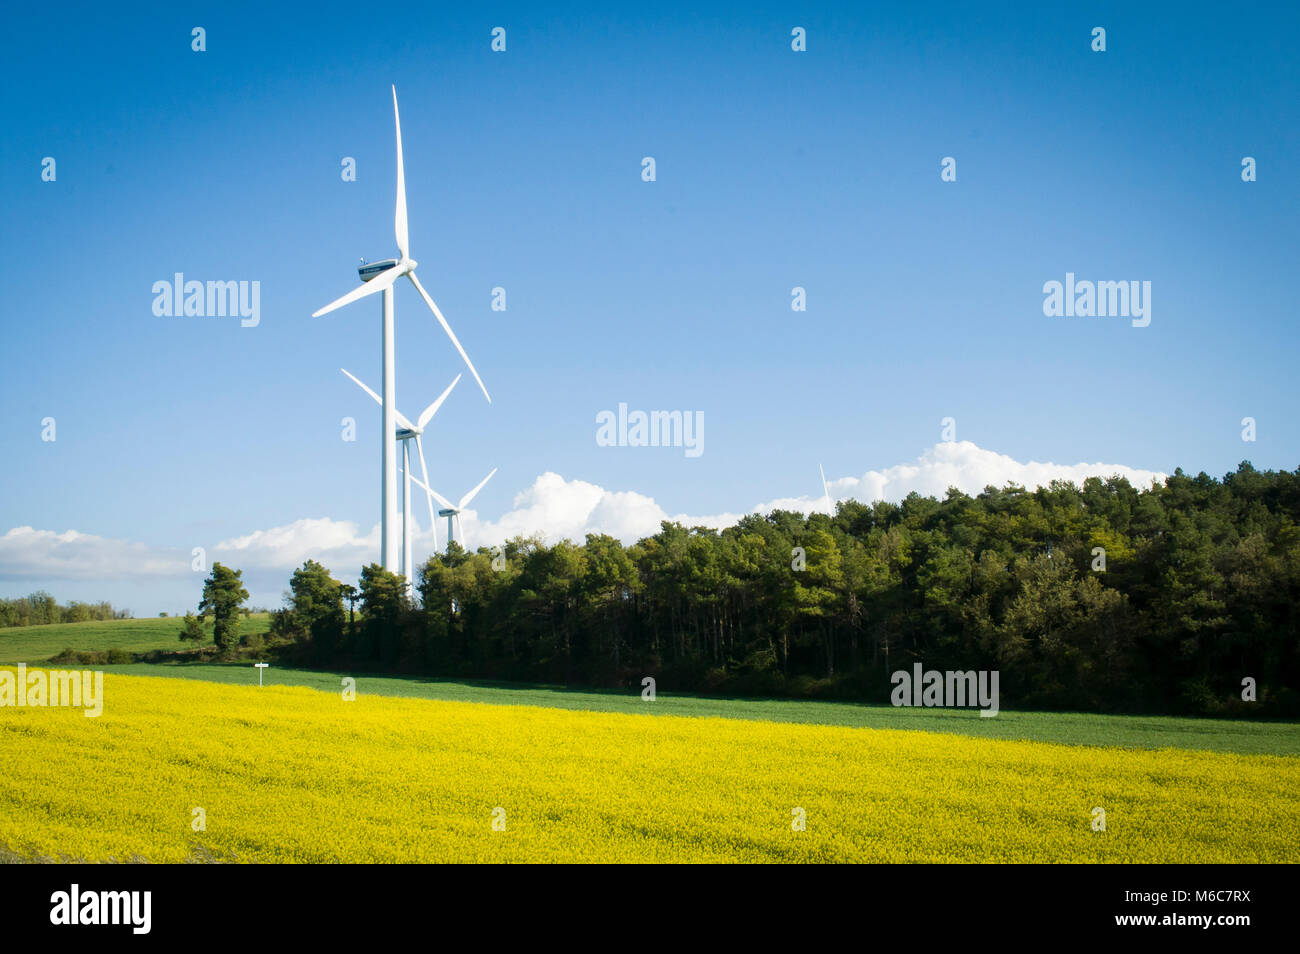 Rural landscape with colza and cultivated field - Stock Image